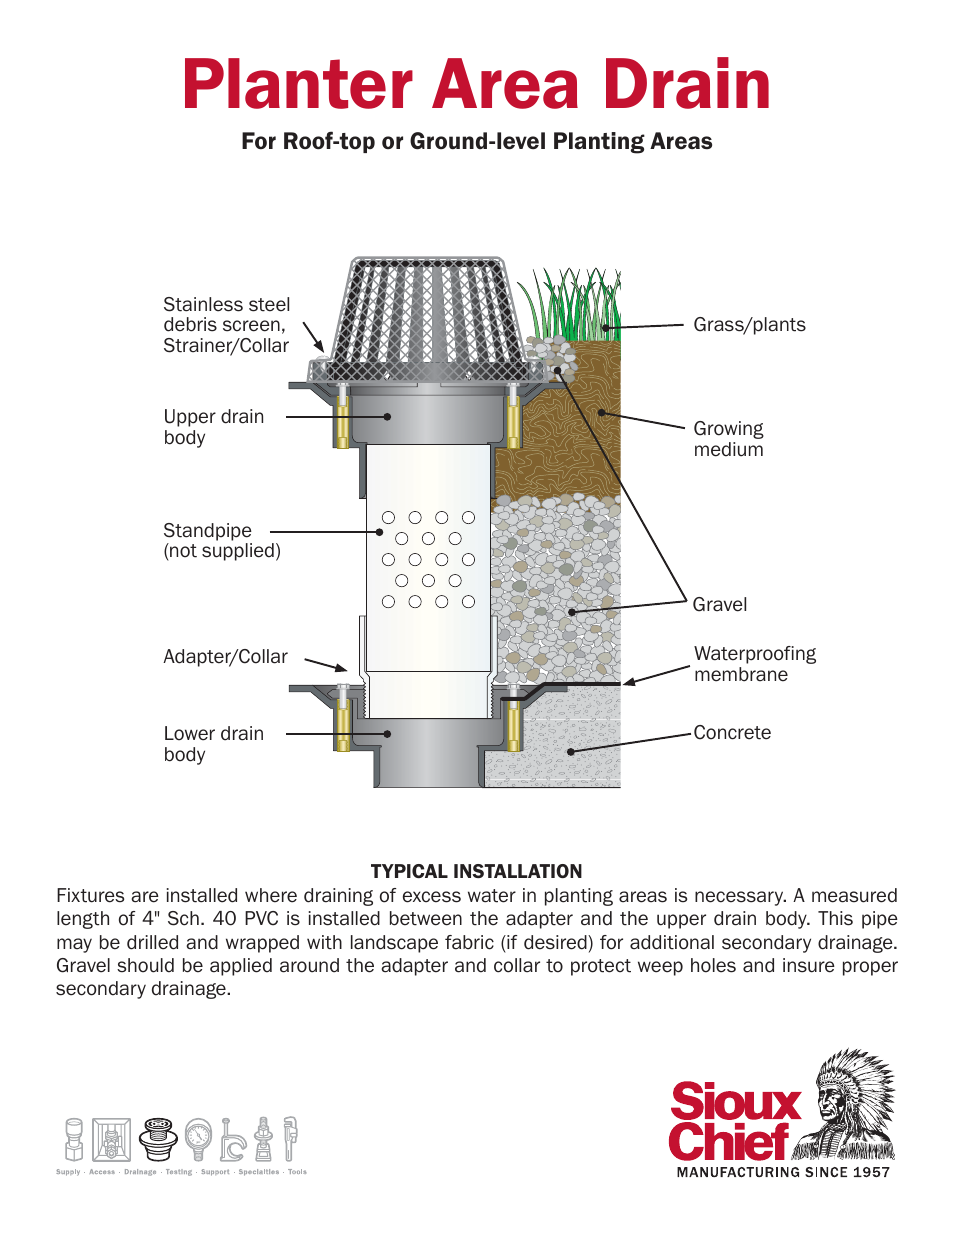 sioux chief planter area drain user manual